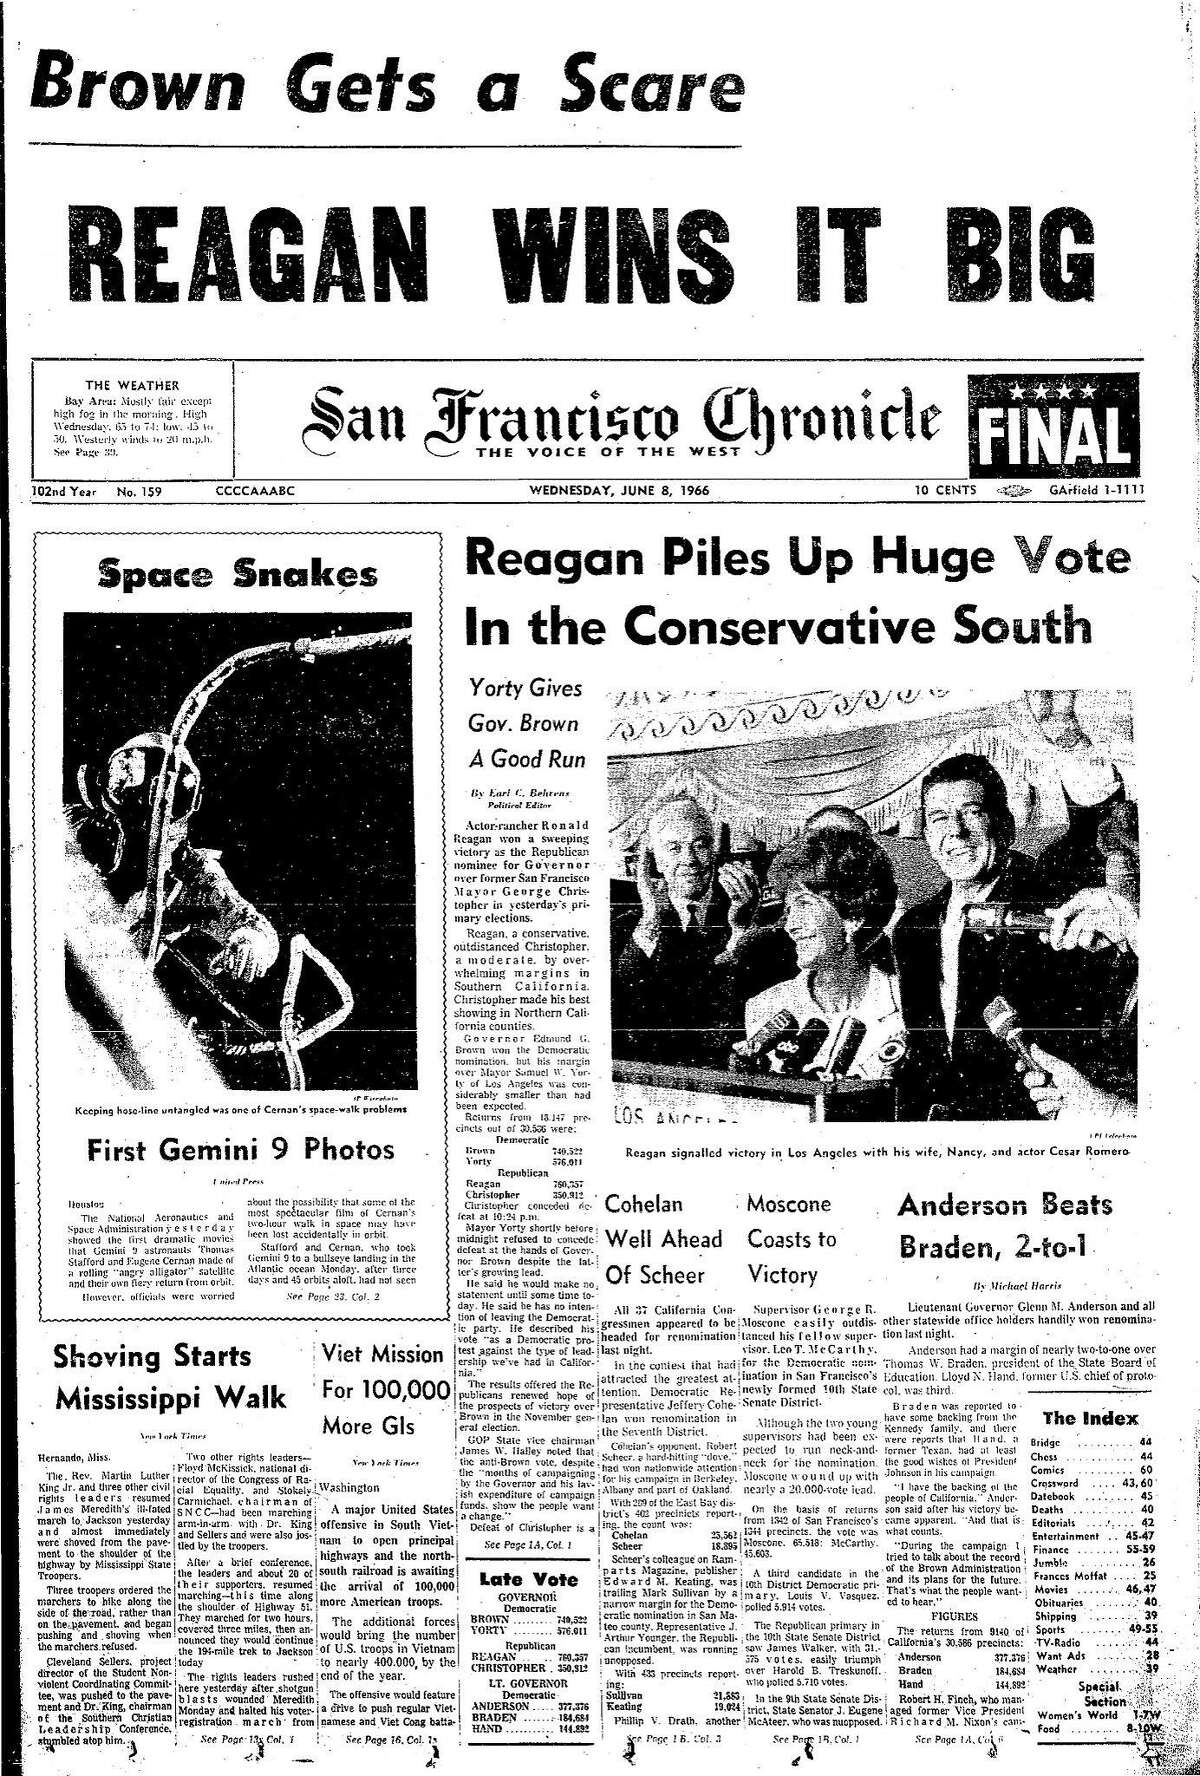 Historic Chronicle Front Page June 8, 1968 Ronald Reagan, wins the race to be the Republican candidate to become governor Chron365, Chroncover